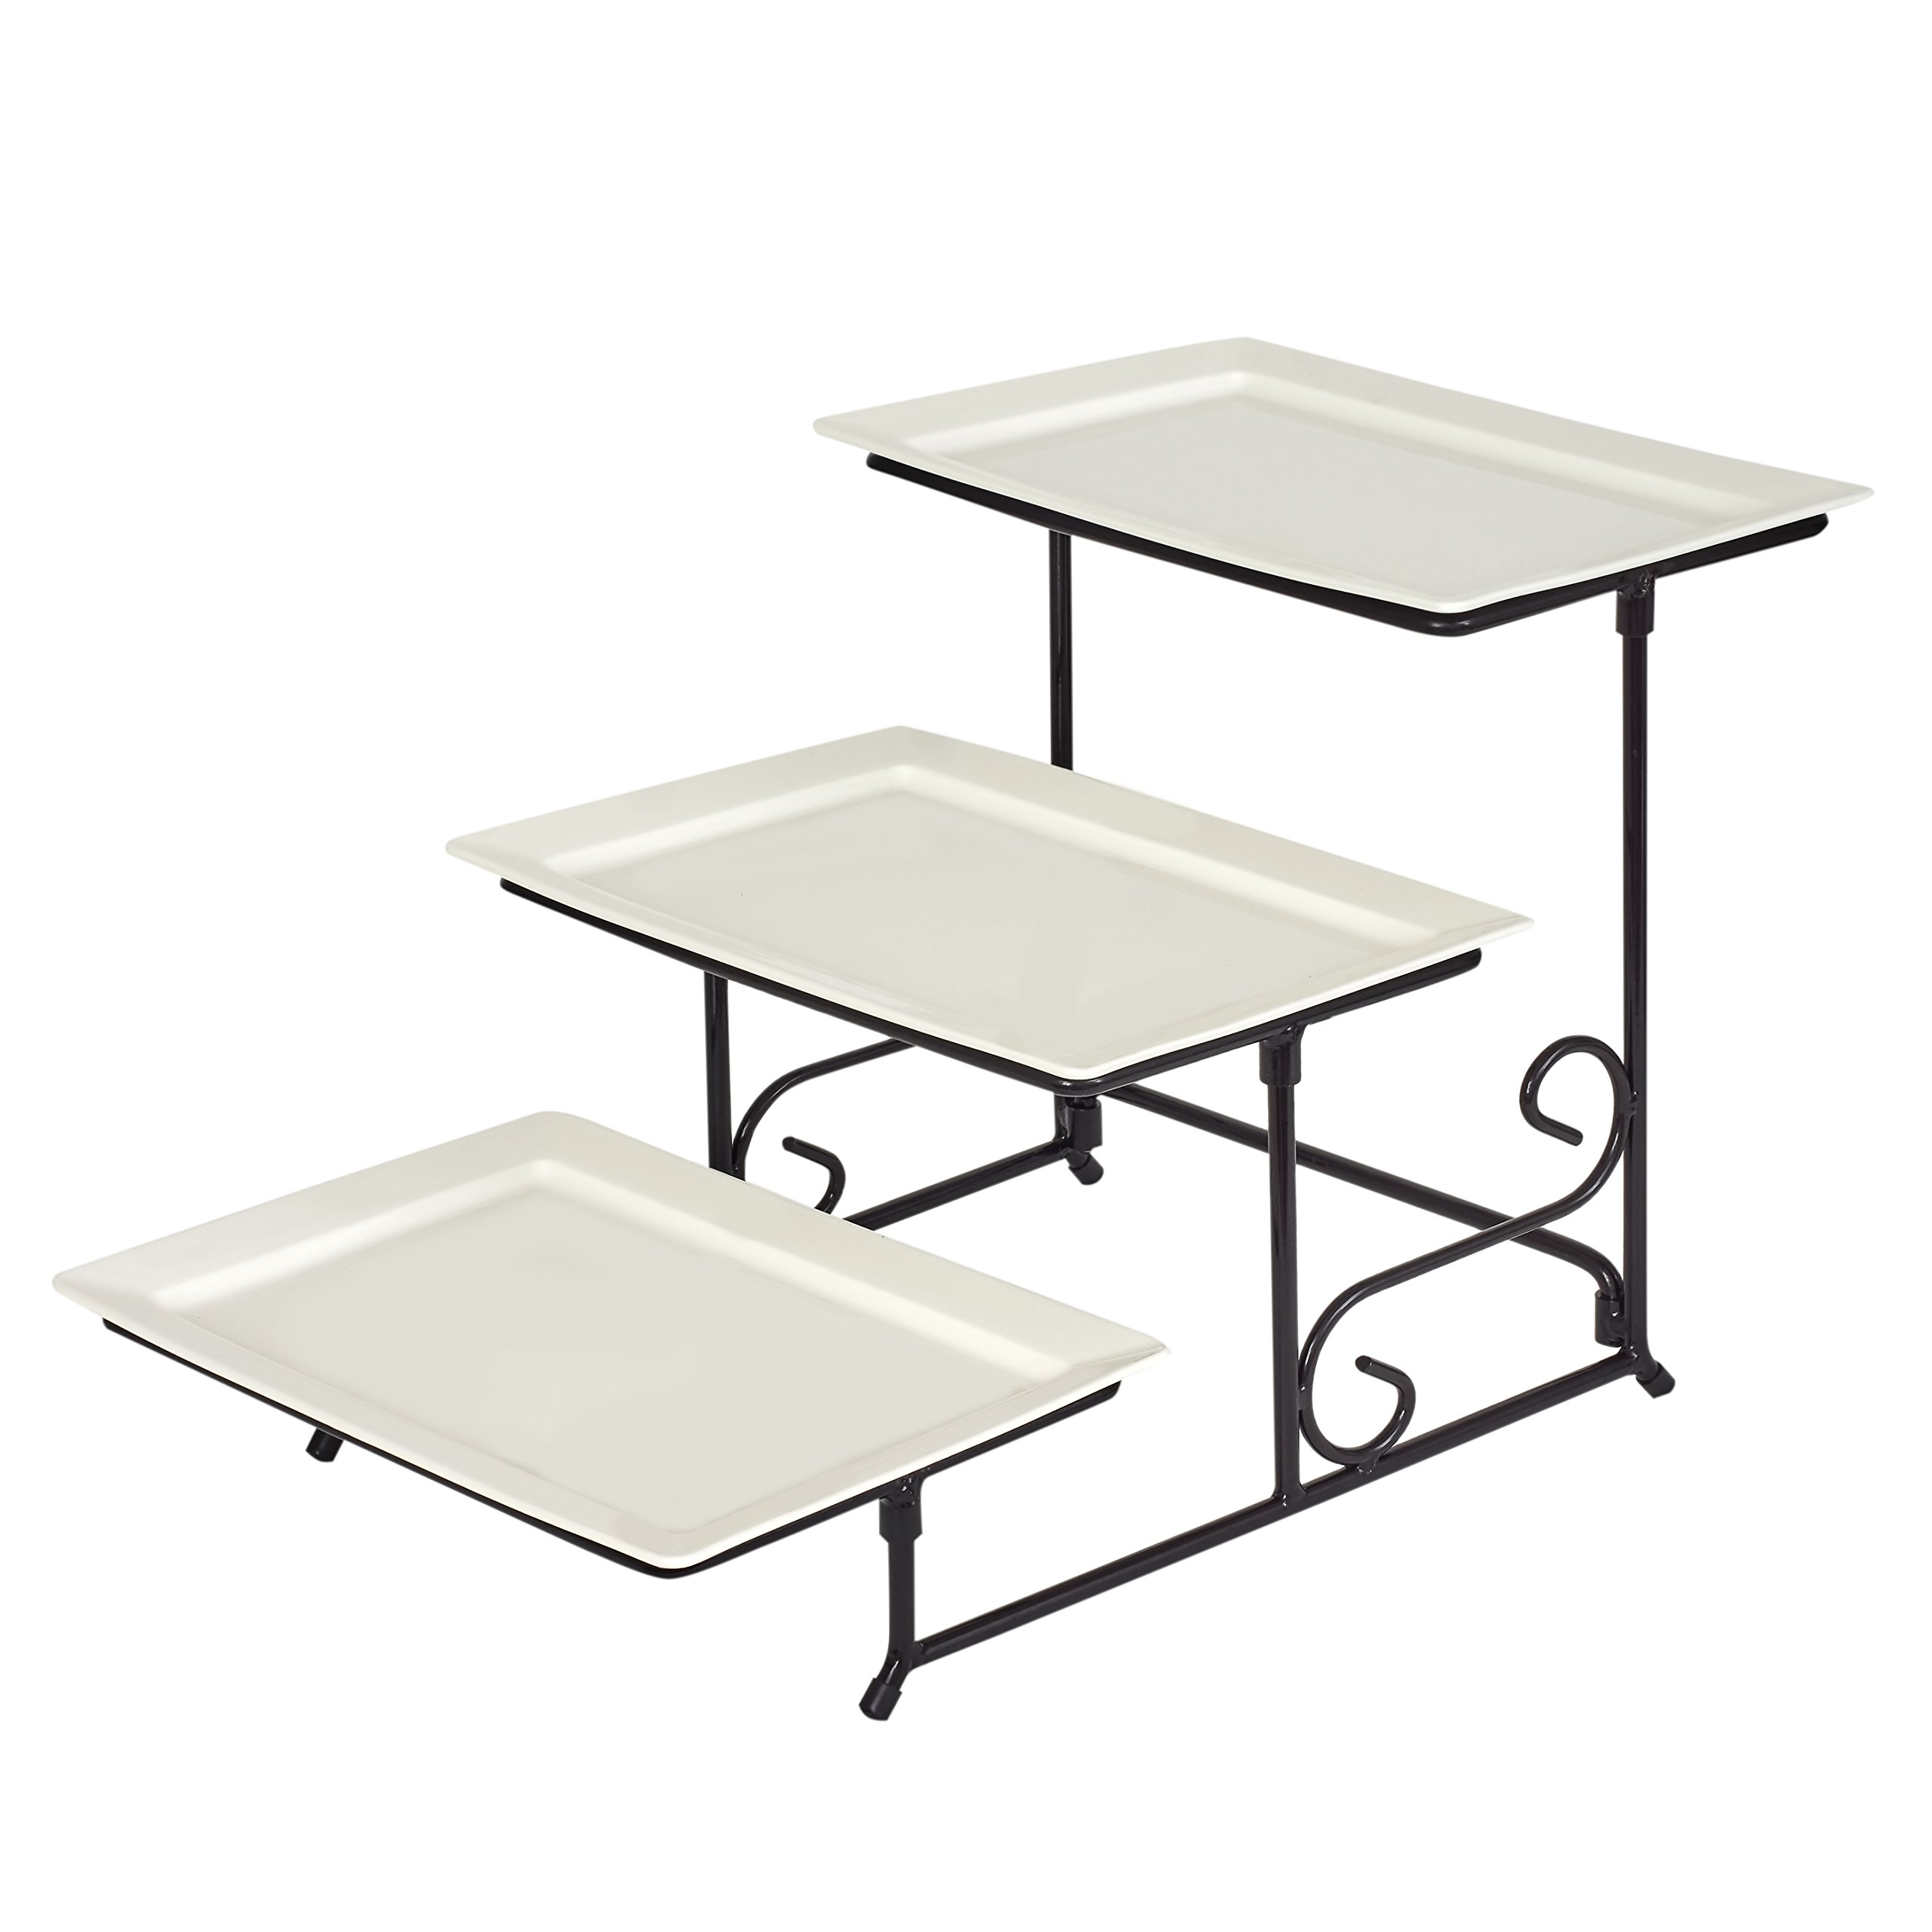 Serving Tray - Large Tiered Serving Tray - White Ceramic Plates - Black Sturdy Metal Rack - Elegant and Resistant Serving Display - For Dinners Parties or Home Decor Ceramic Platter and Iron Stand